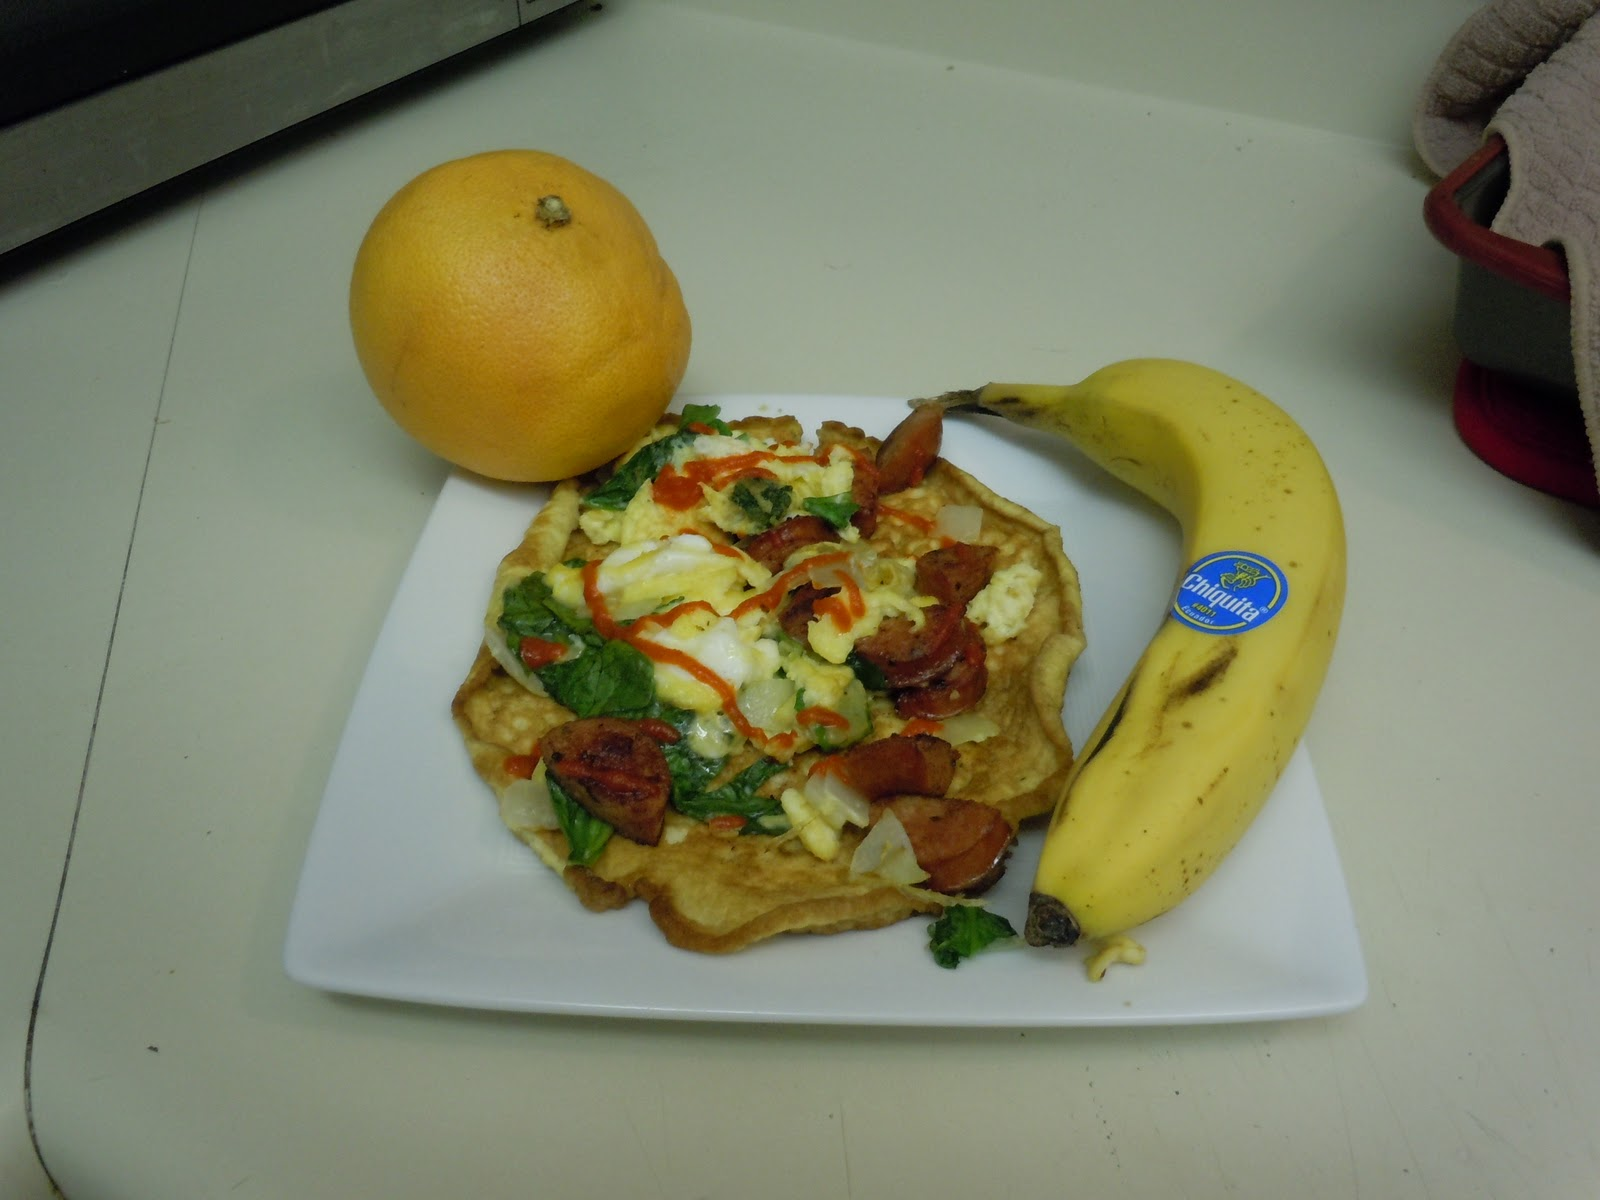 Savory coconut pancakes topped with egg scramble and a side of fruit